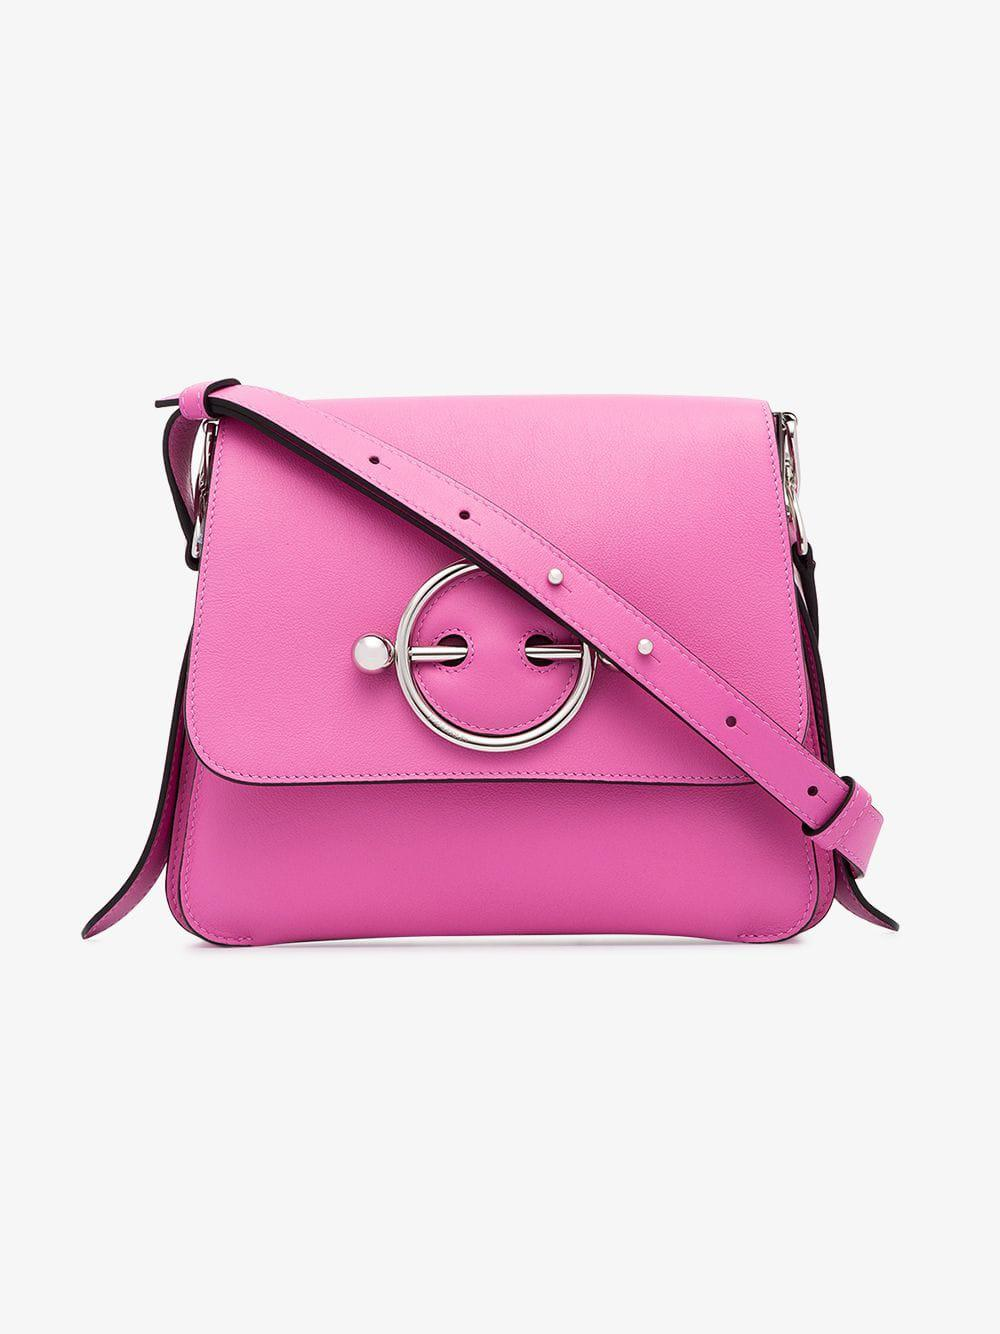 J.W. Anderson - Disc Pink Leather Cross-body Bag - Lyst. View fullscreen 7935d595972a2